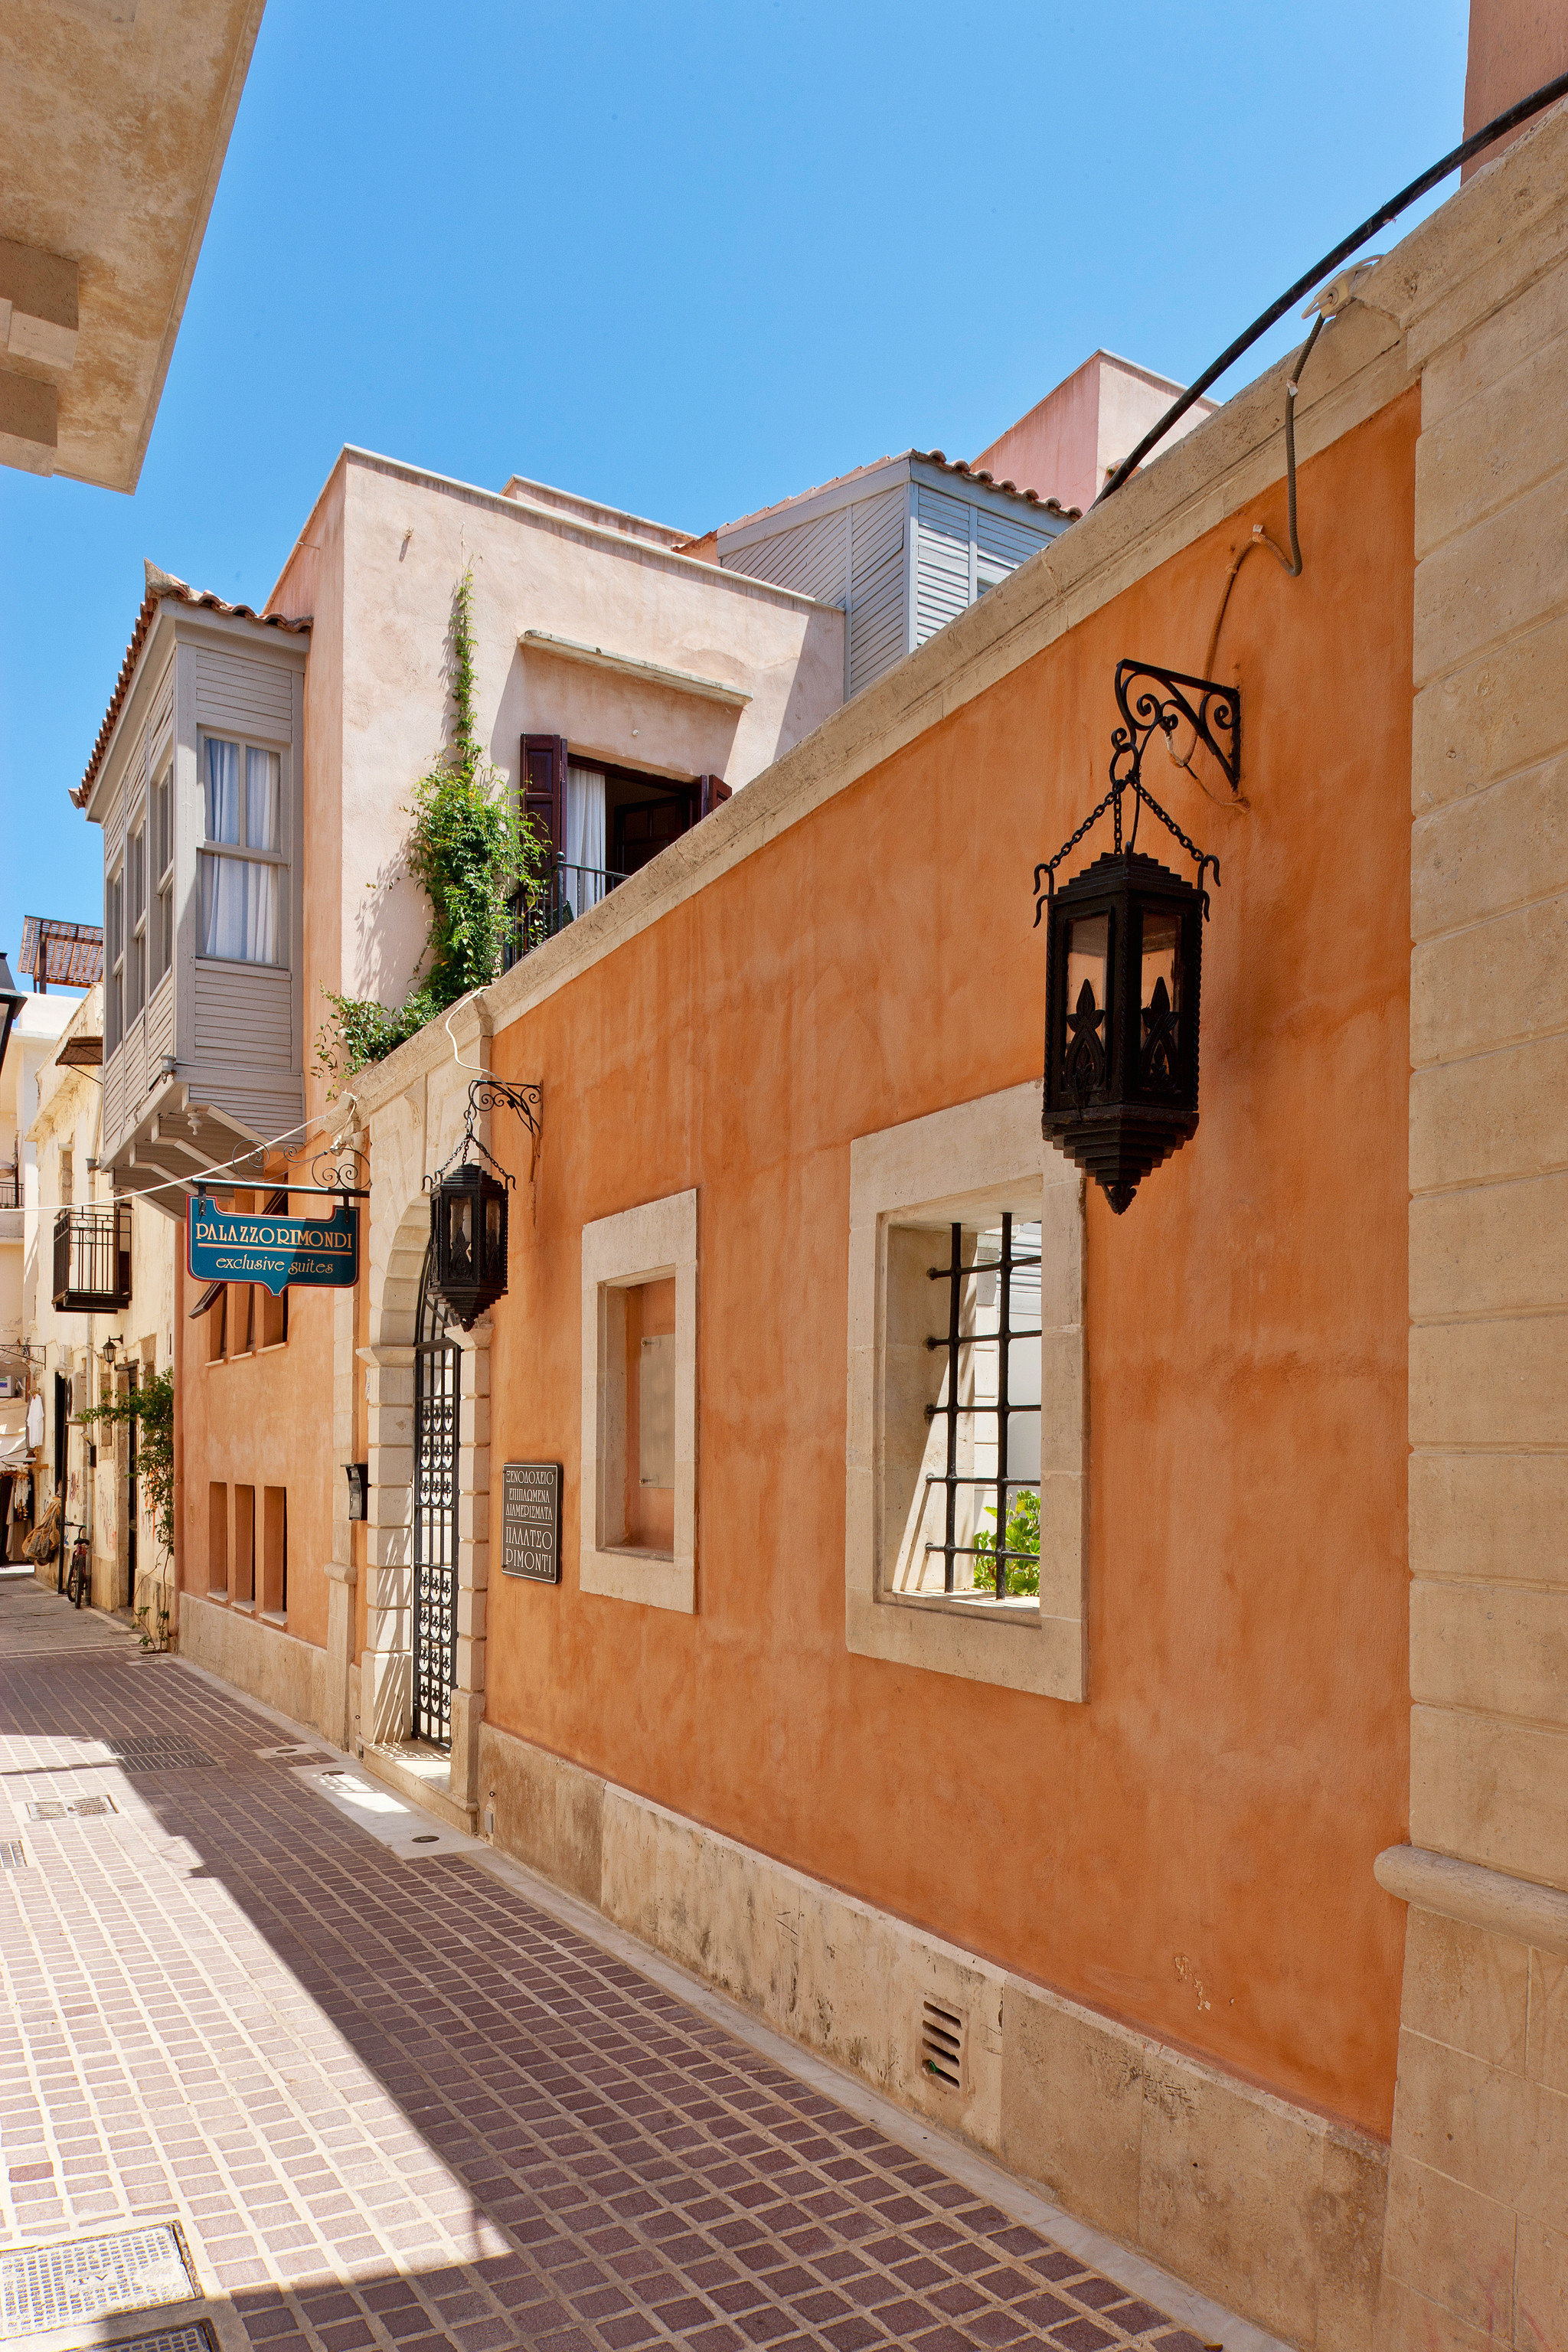 Buildings City Cultural Historic building Town property road neighbourhood house way street Architecture brick scene residential area Downtown alley home infrastructure sidewalk Village stone